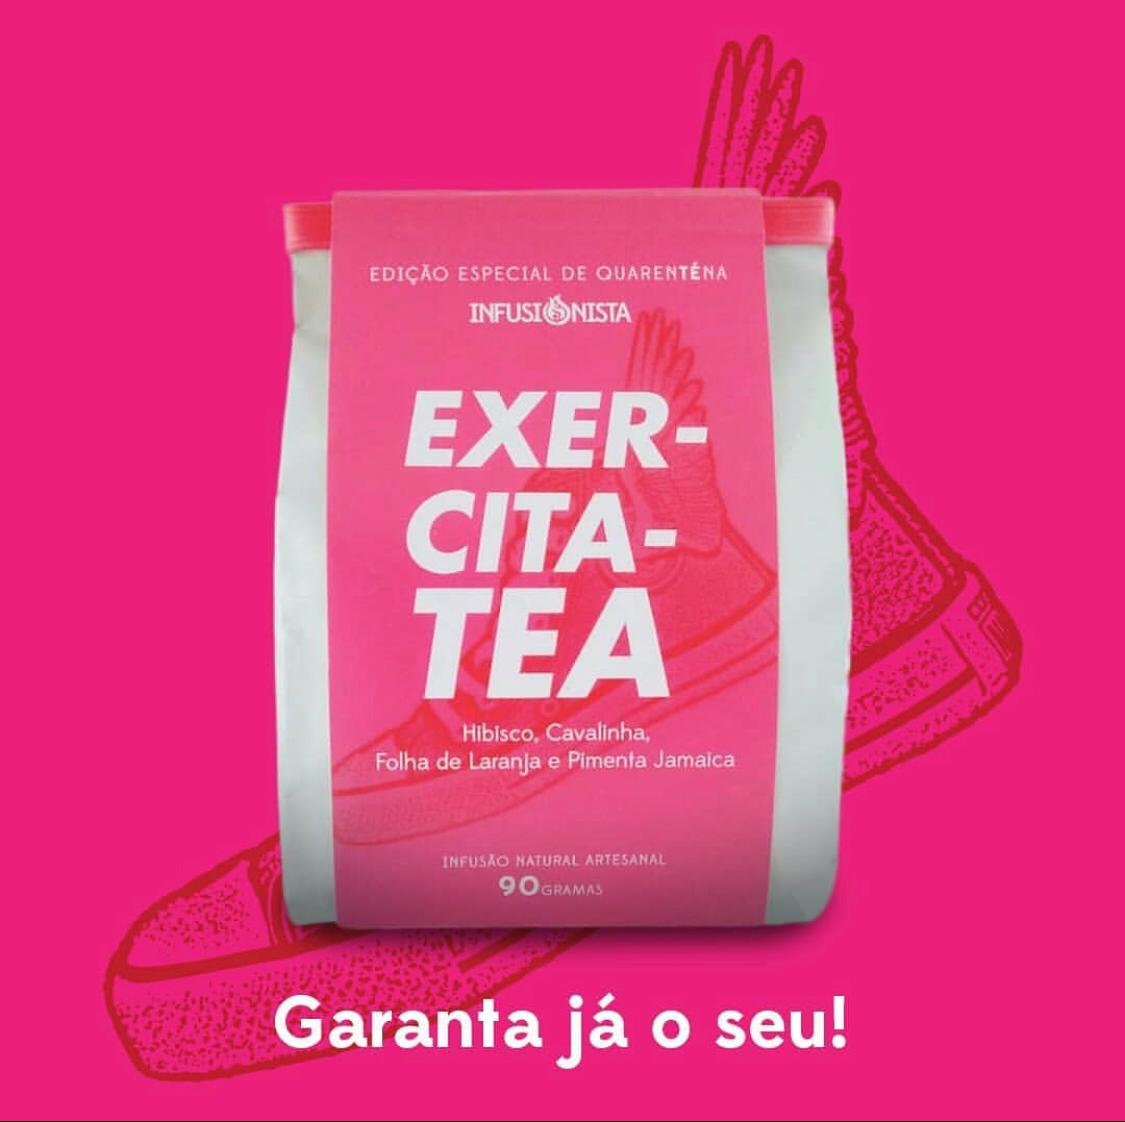 Exercita-TEA